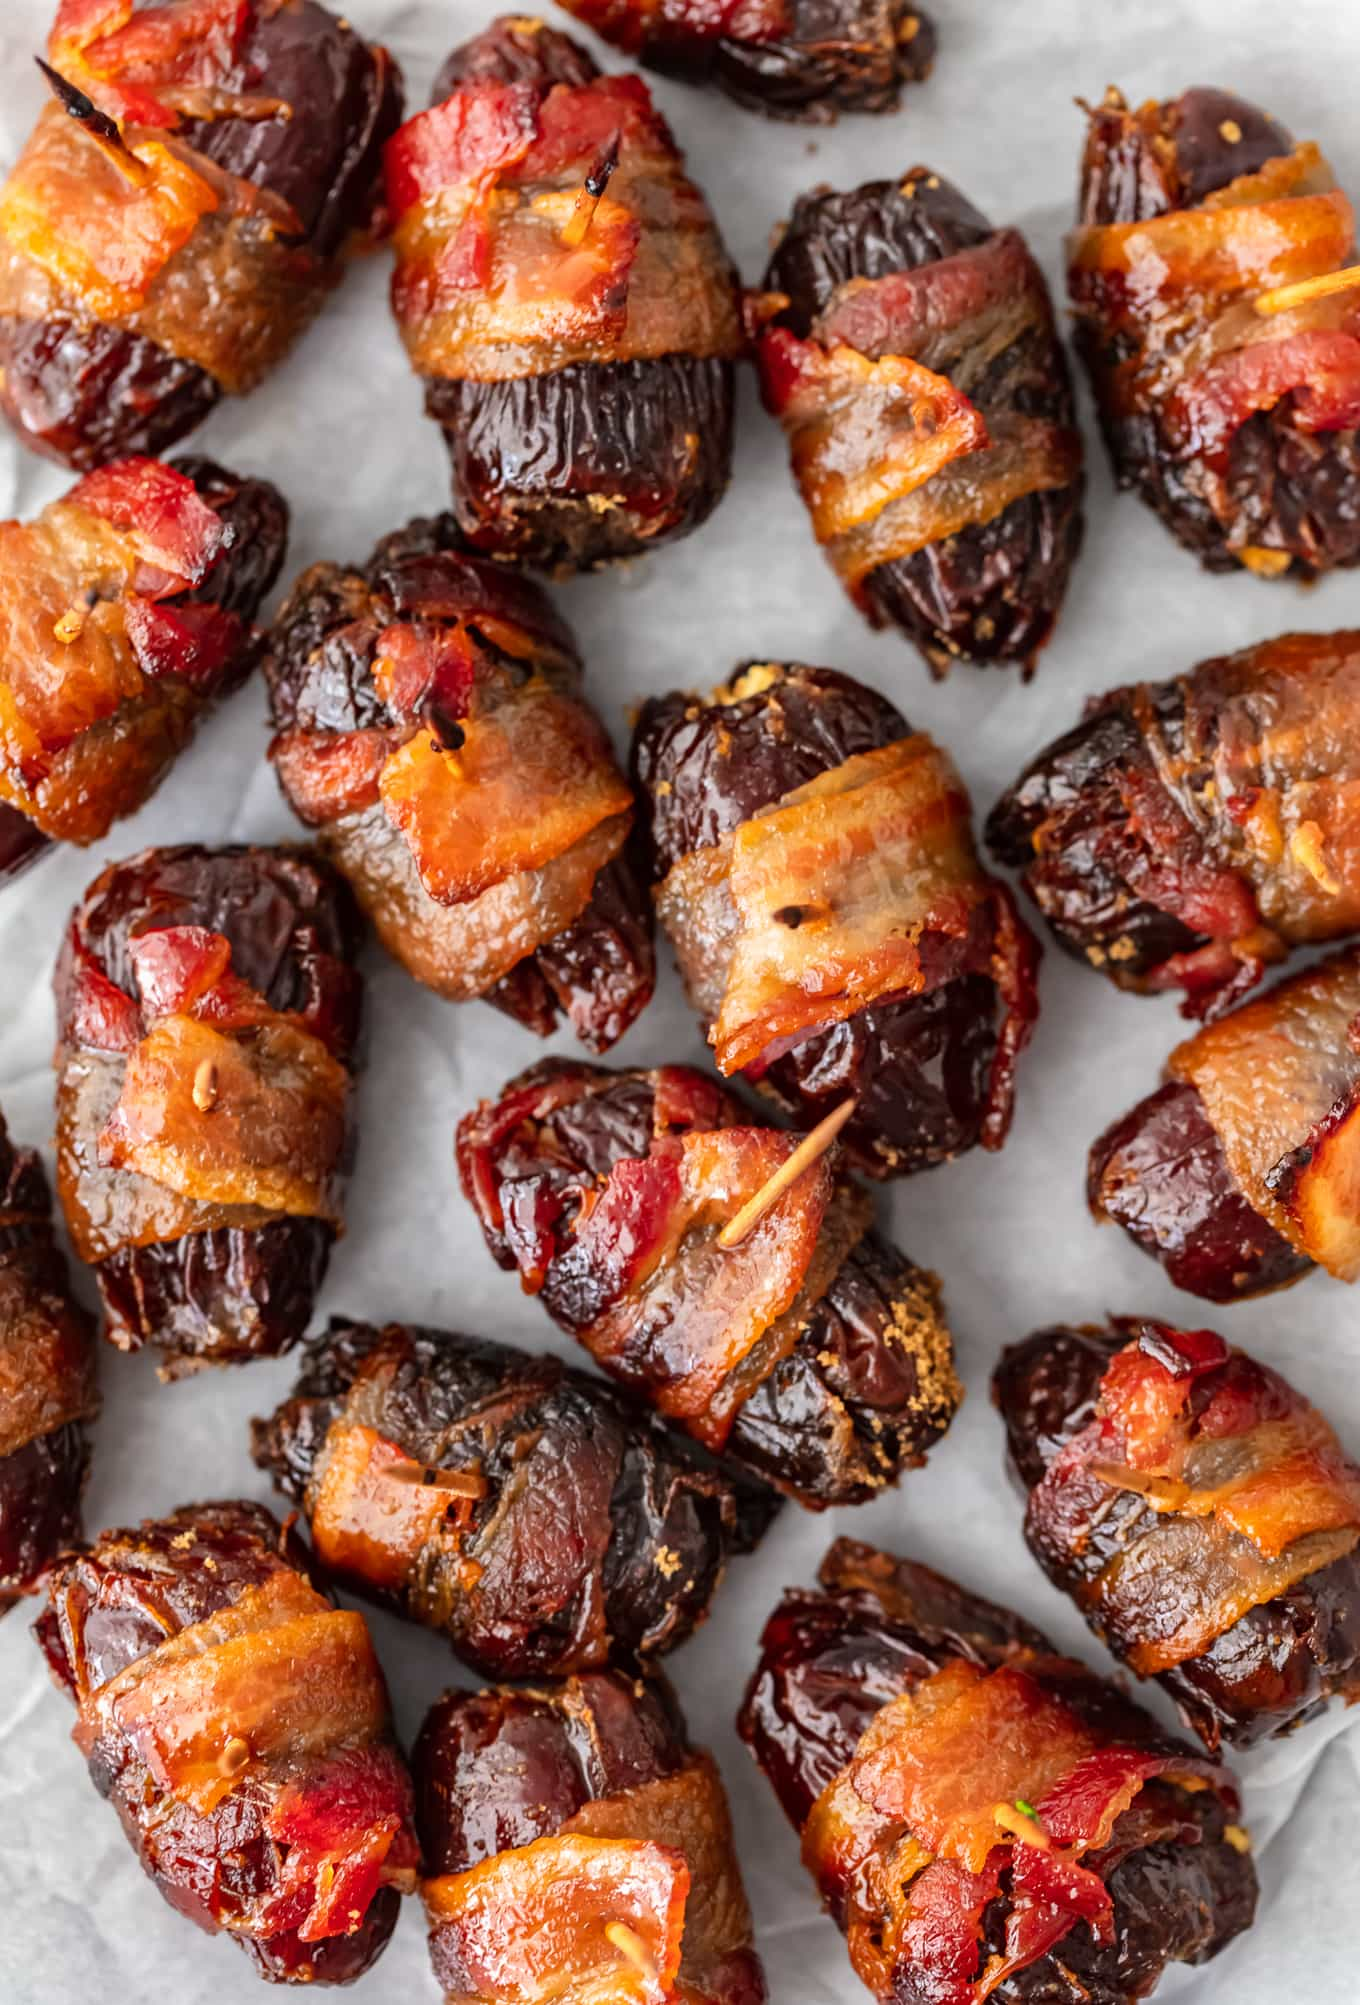 bacon wrapped dates arranged on parchment paper